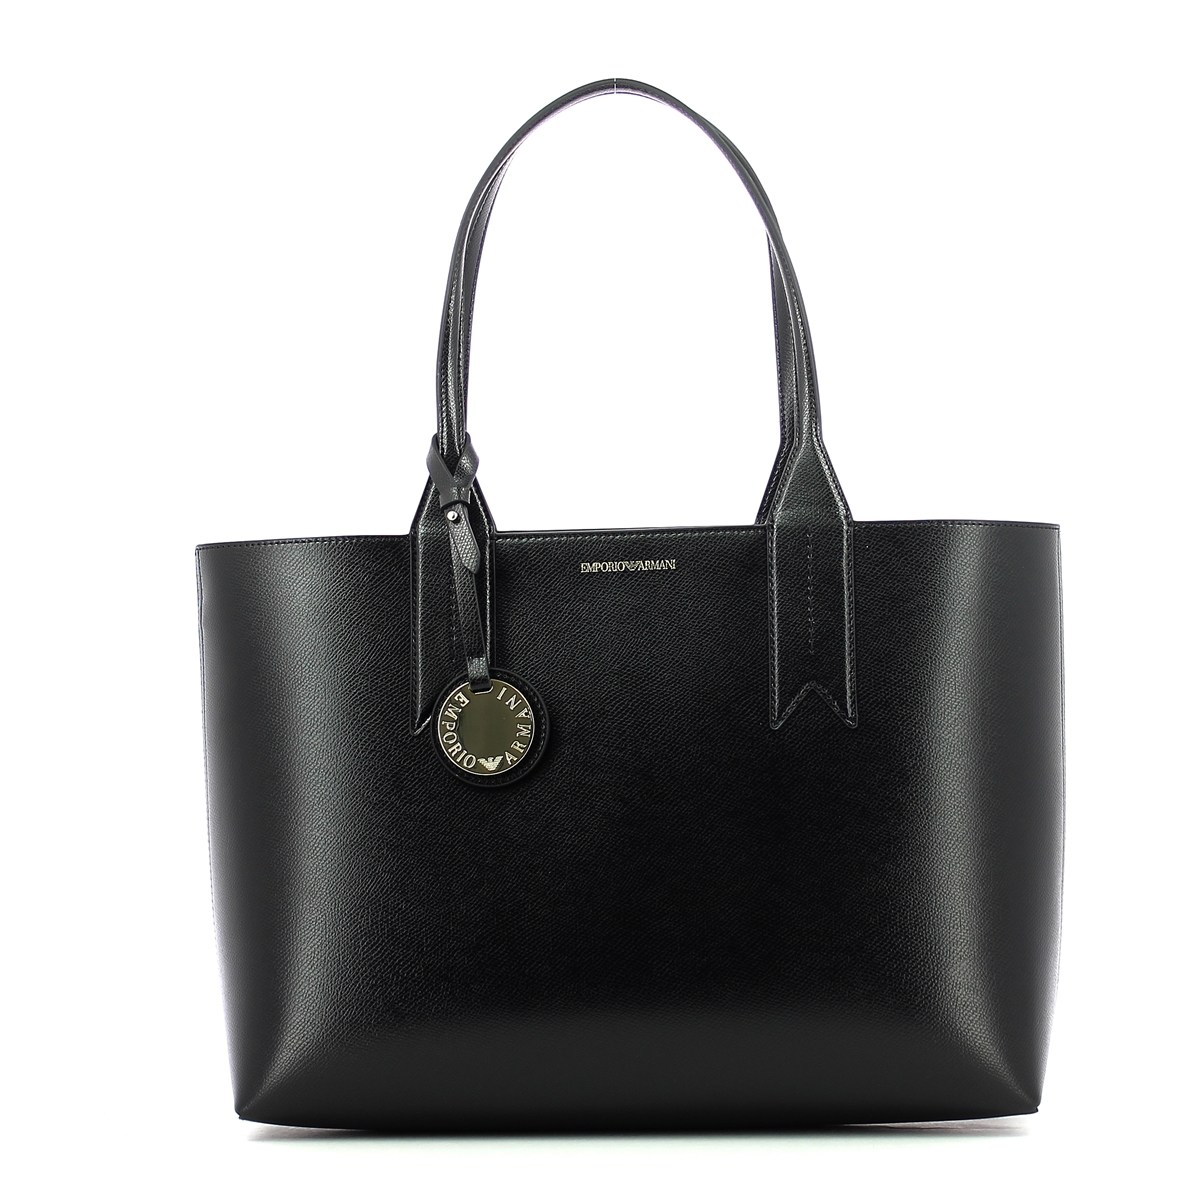 SHOPPING BAG 72646580- EMPORIO ARMANI